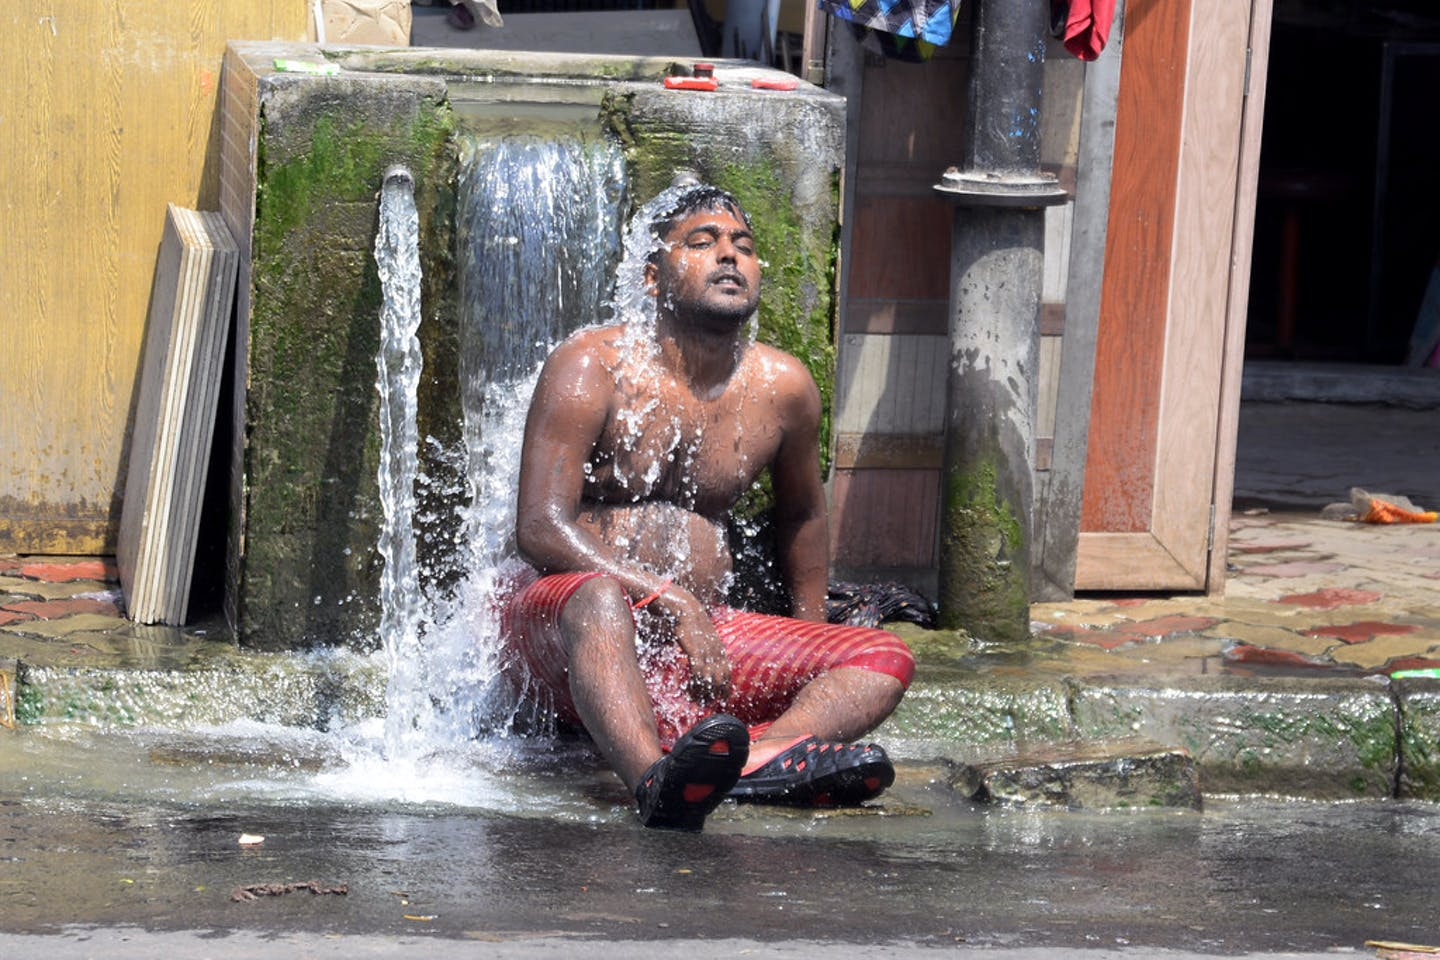 A local man cooling off india